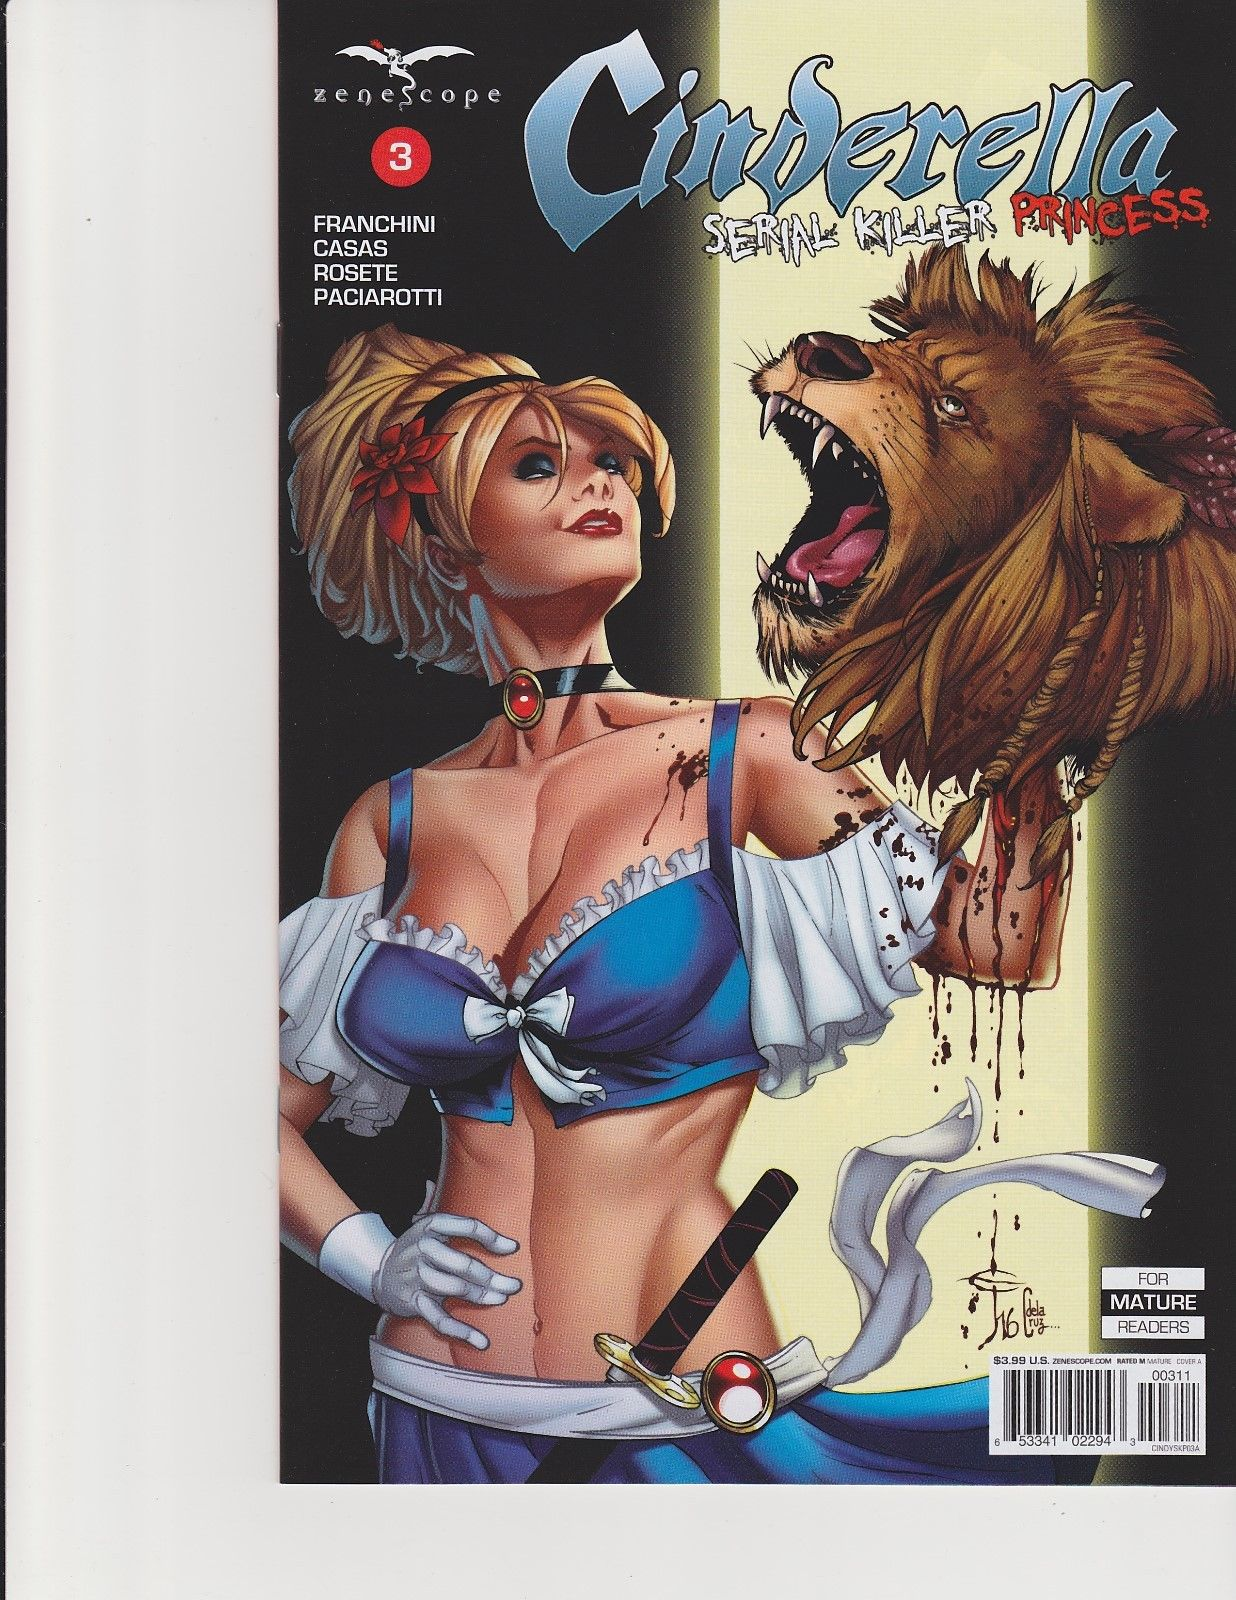 Wonderland #28 Cover A GFT Zenescope NM Mychaels